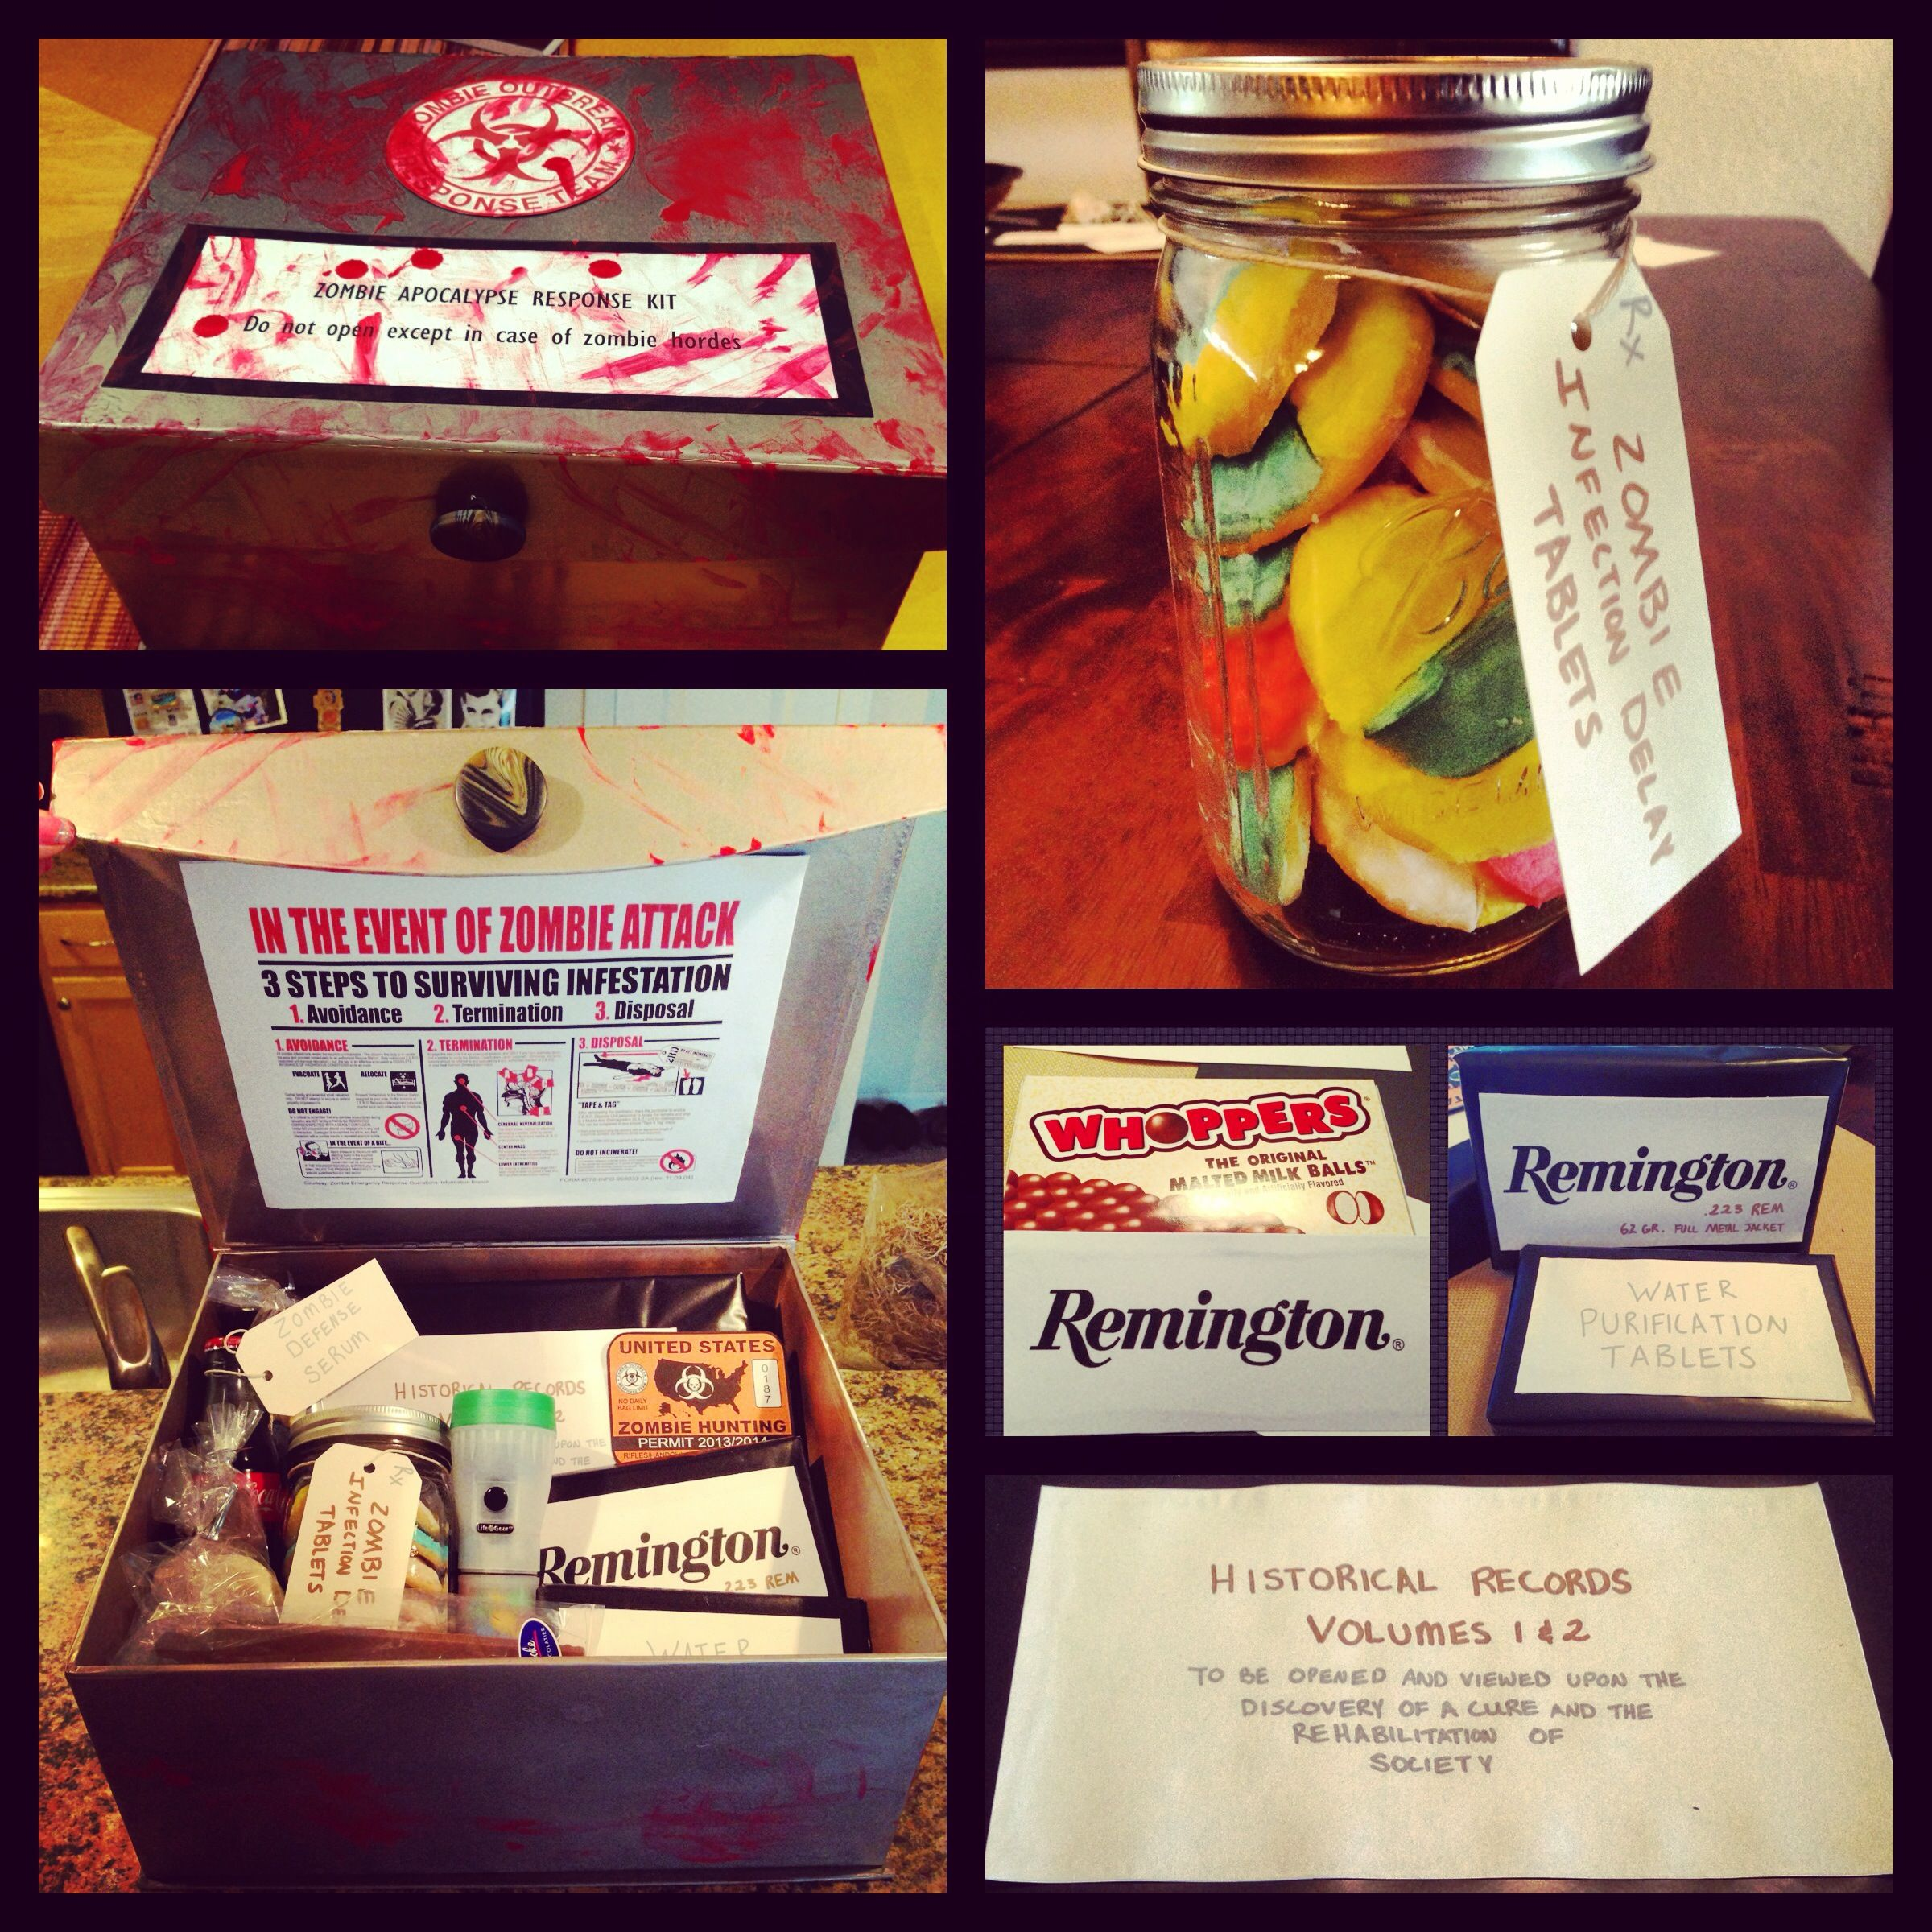 Zombie Survival Kit My Dad And I Watch The Walking Dead Together Every Sunday So For Father S Day Zombie Gifts Christmas Crafts For Gifts Zombie Survival Kit